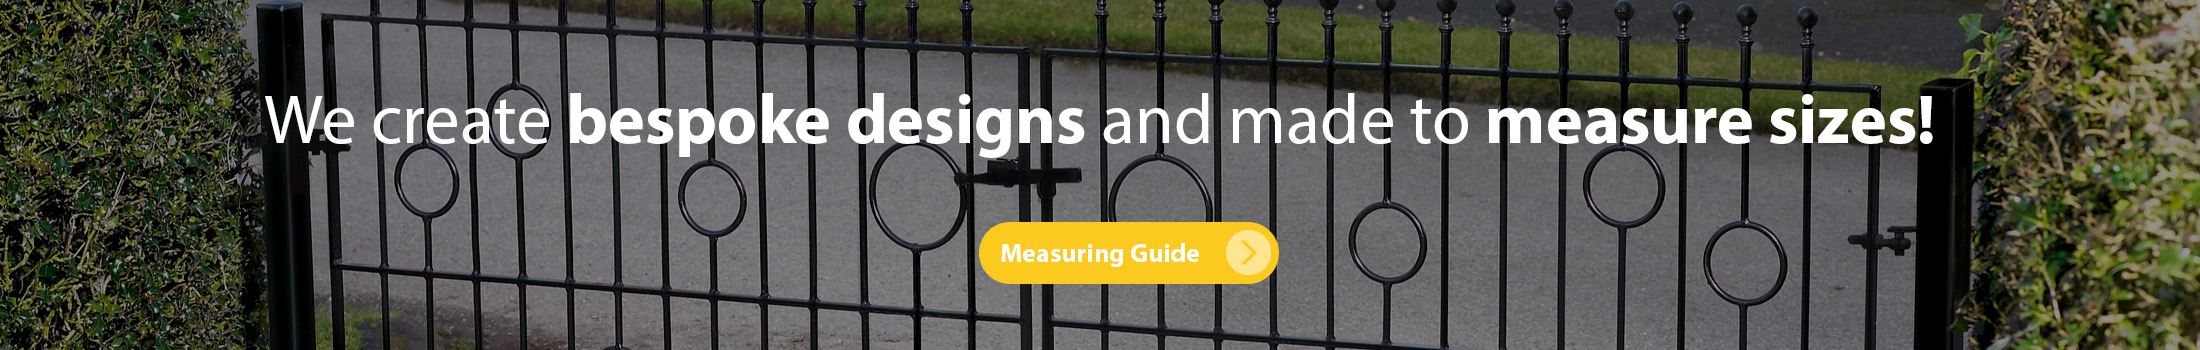 Measuring Guide - Click here